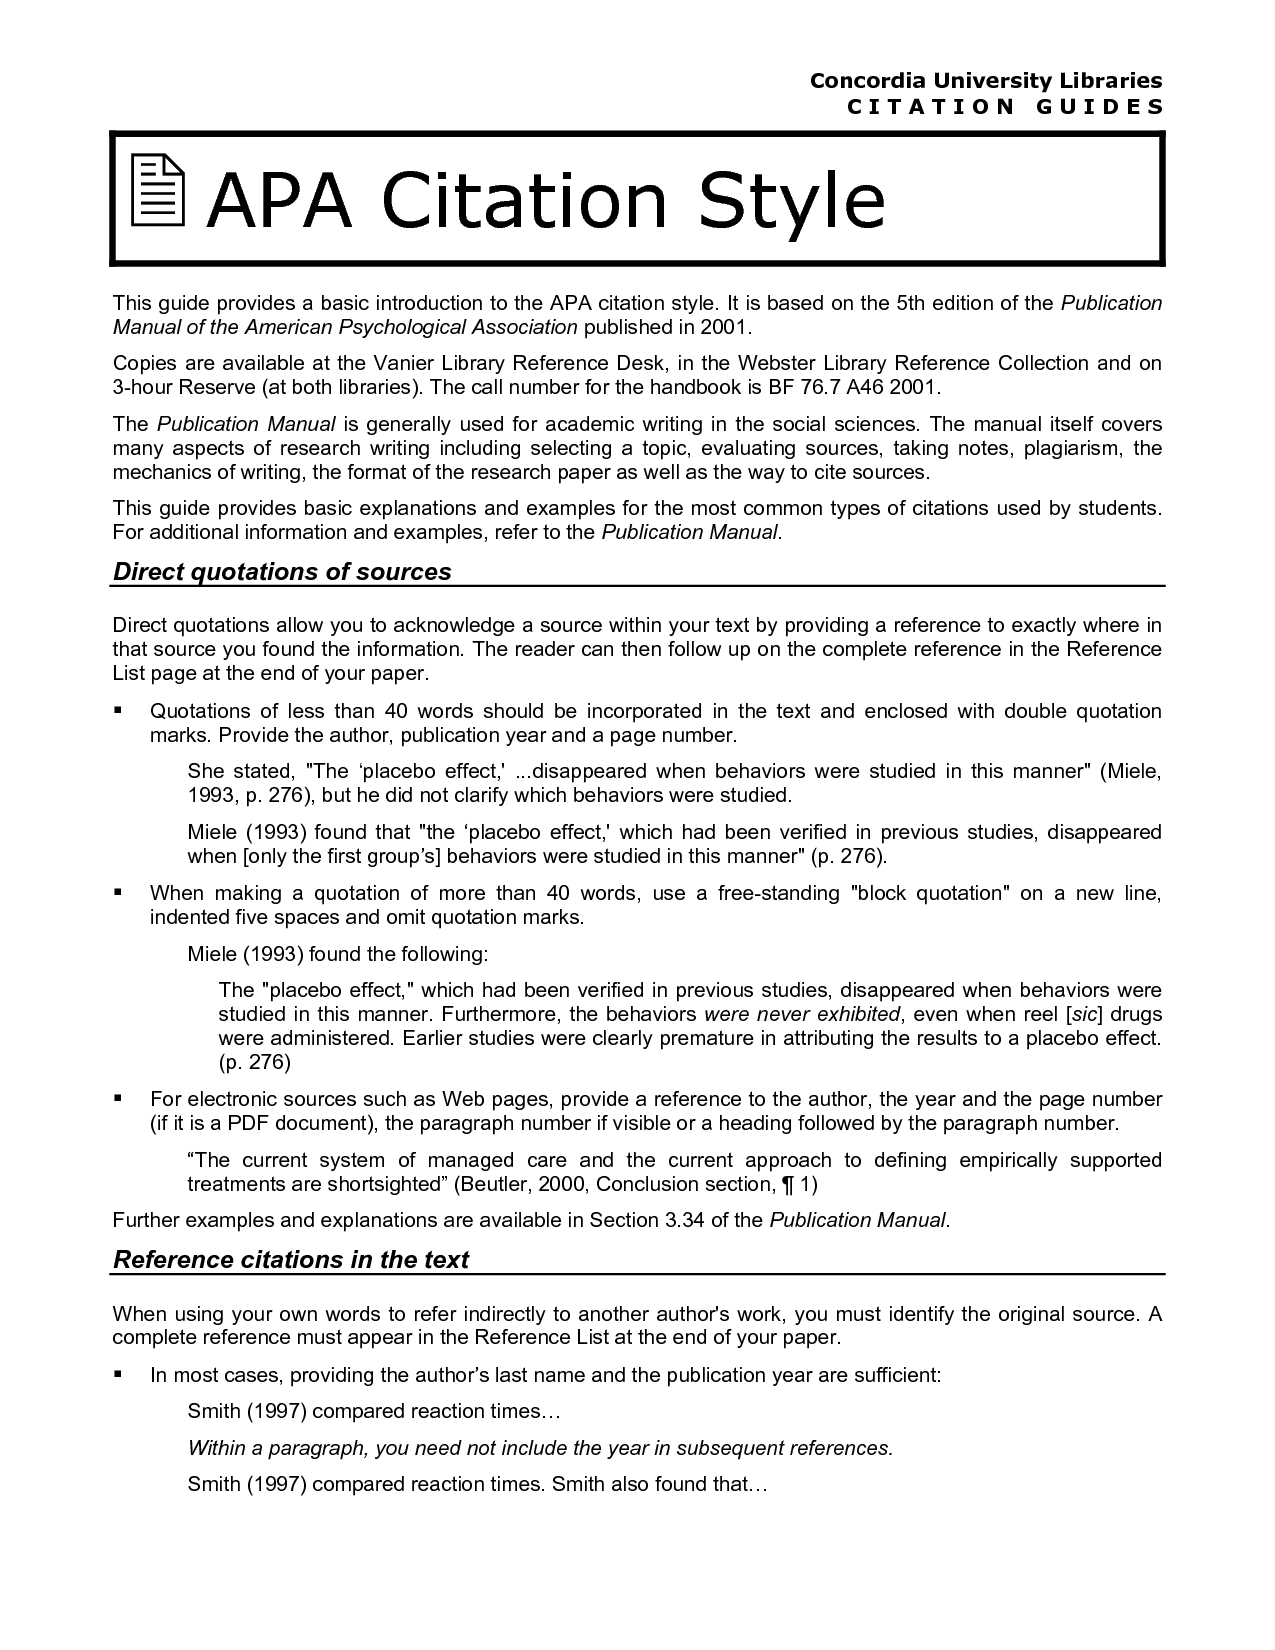 cite sources in apa format